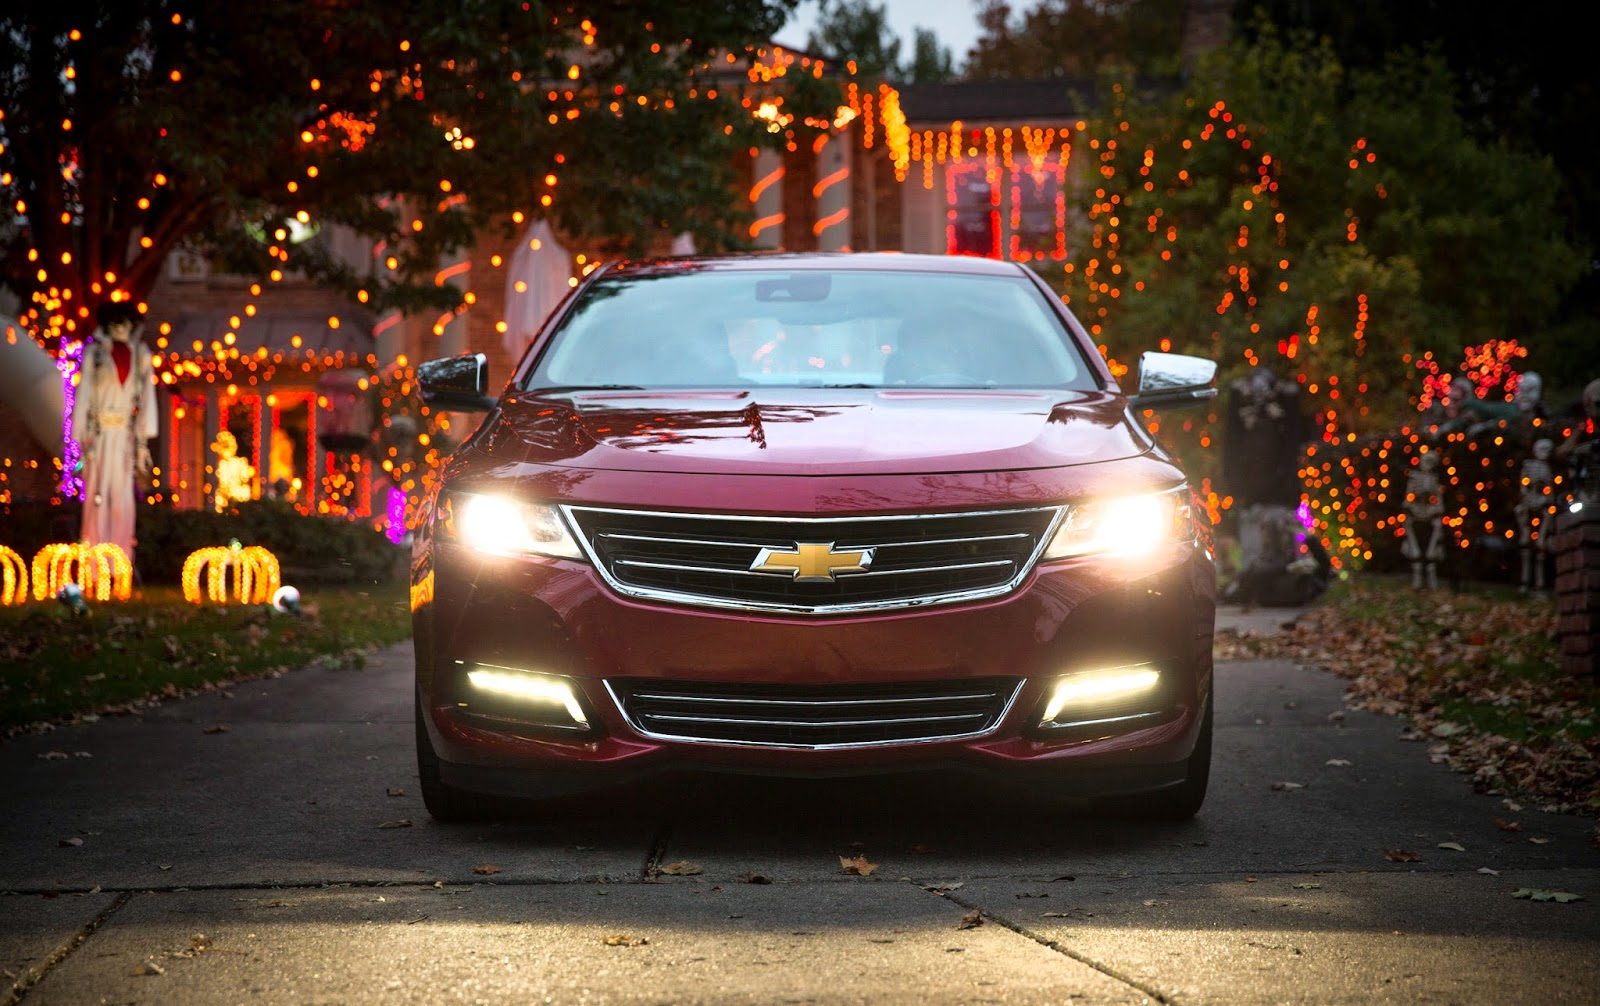 KBB.com Names 2014 Chevy Impala Most Comfortable Car Under $30,000